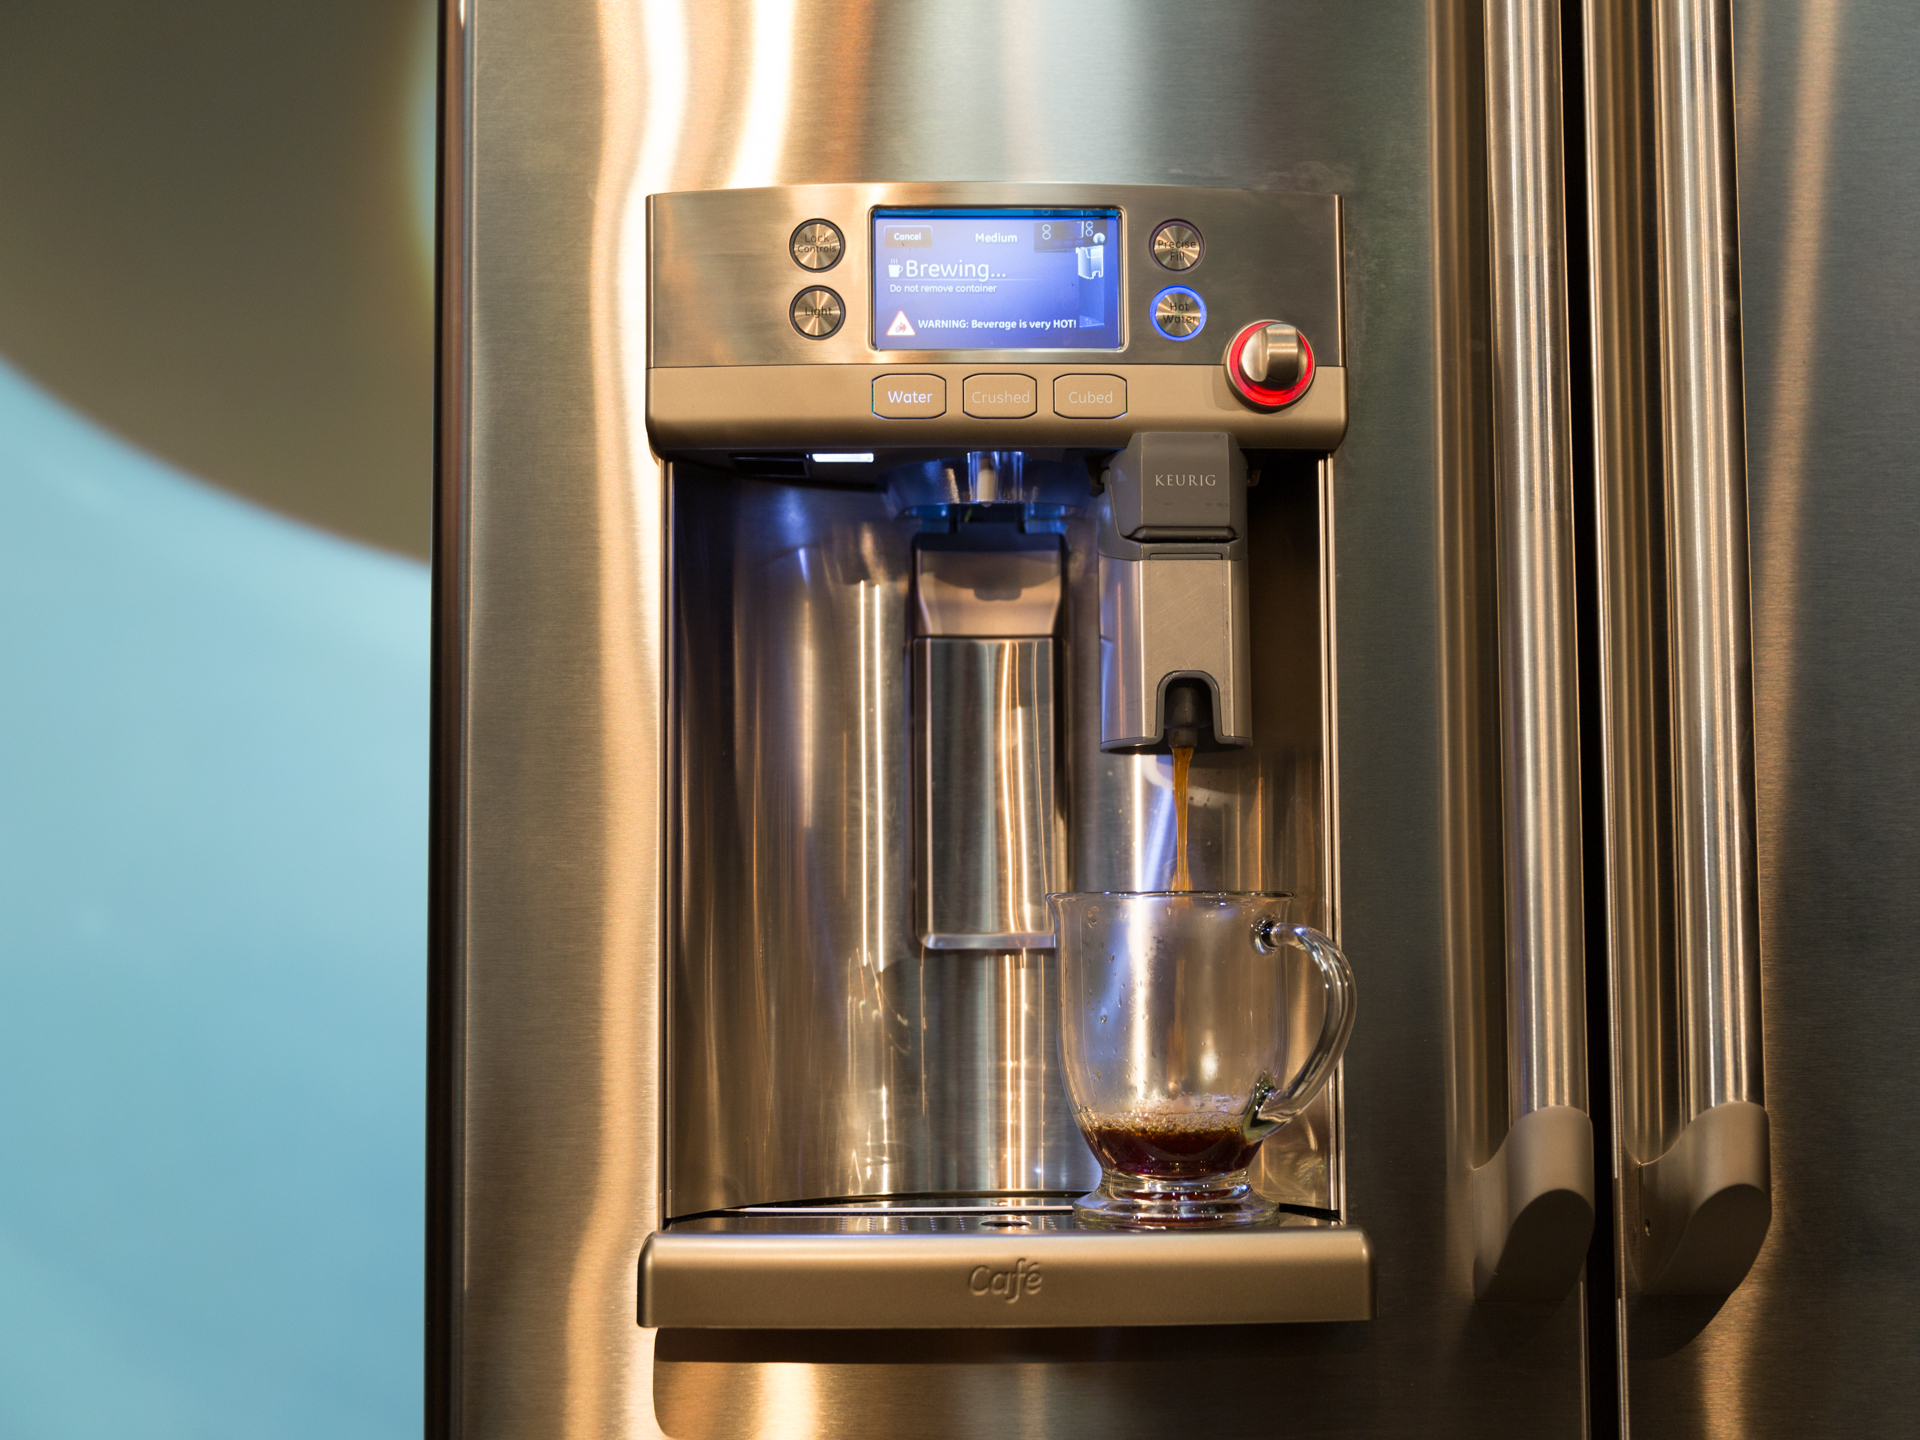 Ge Coffee Maker And Grinder : GE Cafe Series French door refrigerator with Keurig K-Cup Brewing System Release Date, Price and ...